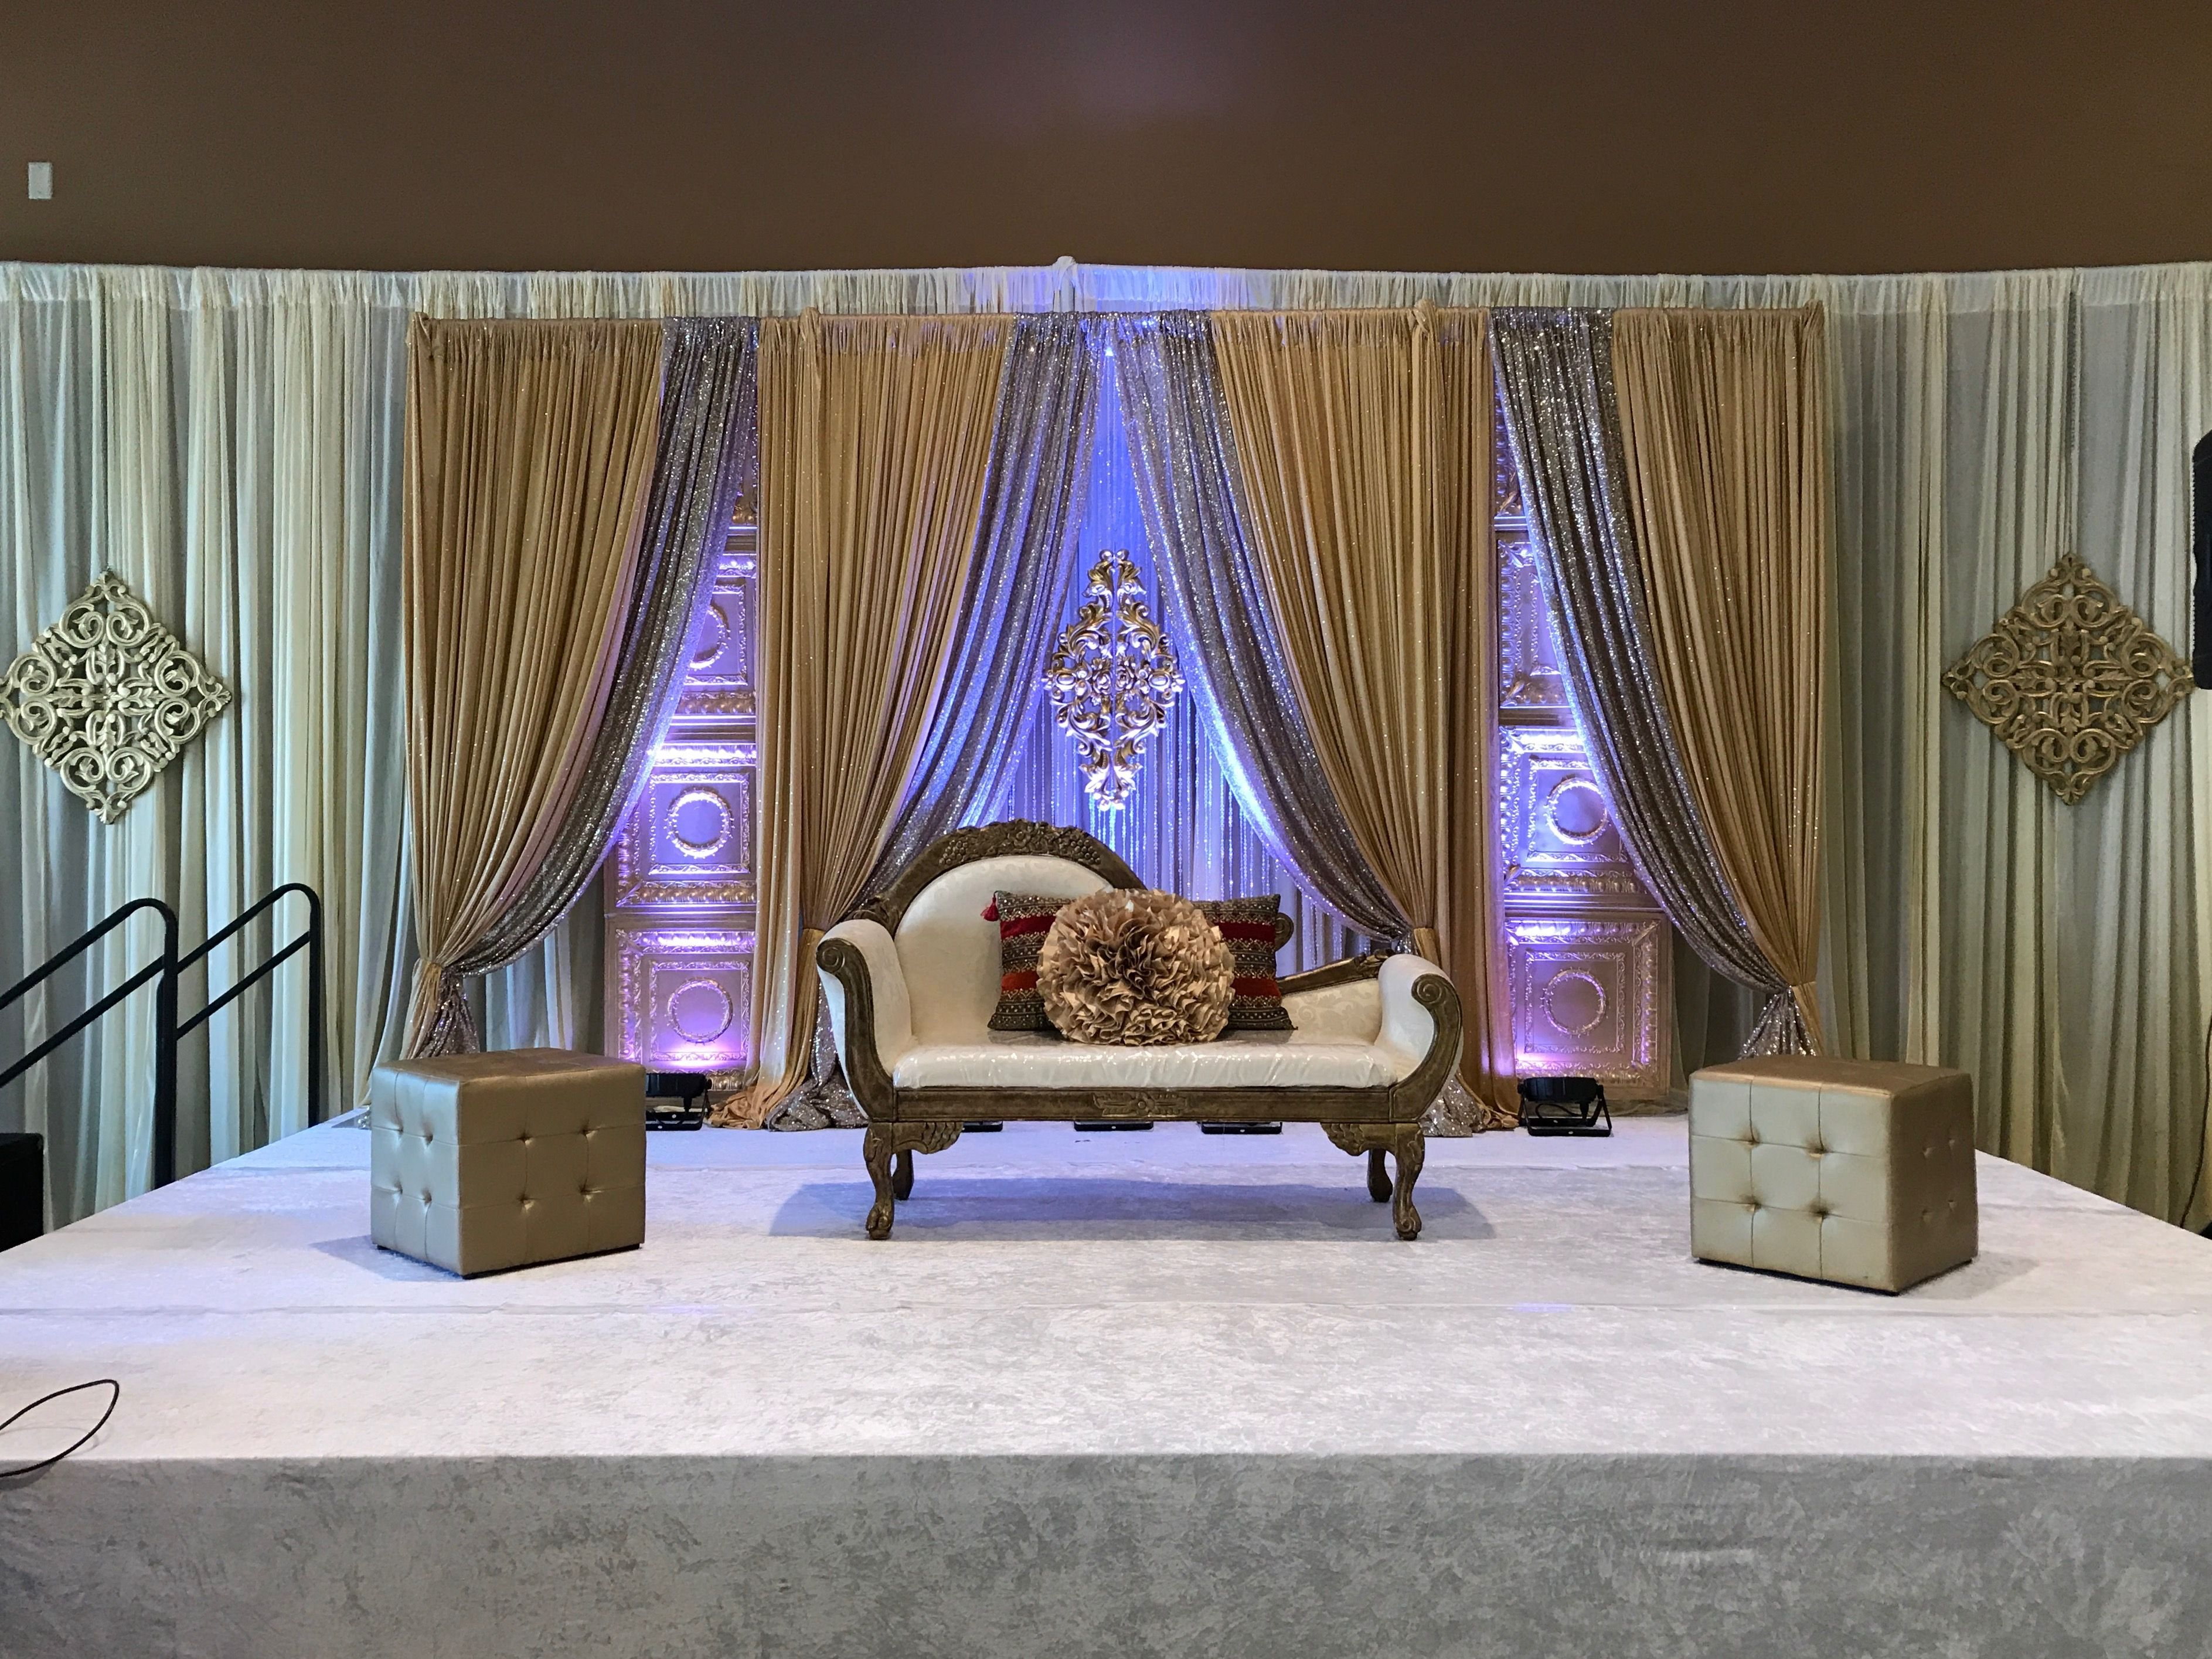 Nigerian wedding stage decoration  Nigerian engagement stage decoration  Wwwnishingtouchdecor